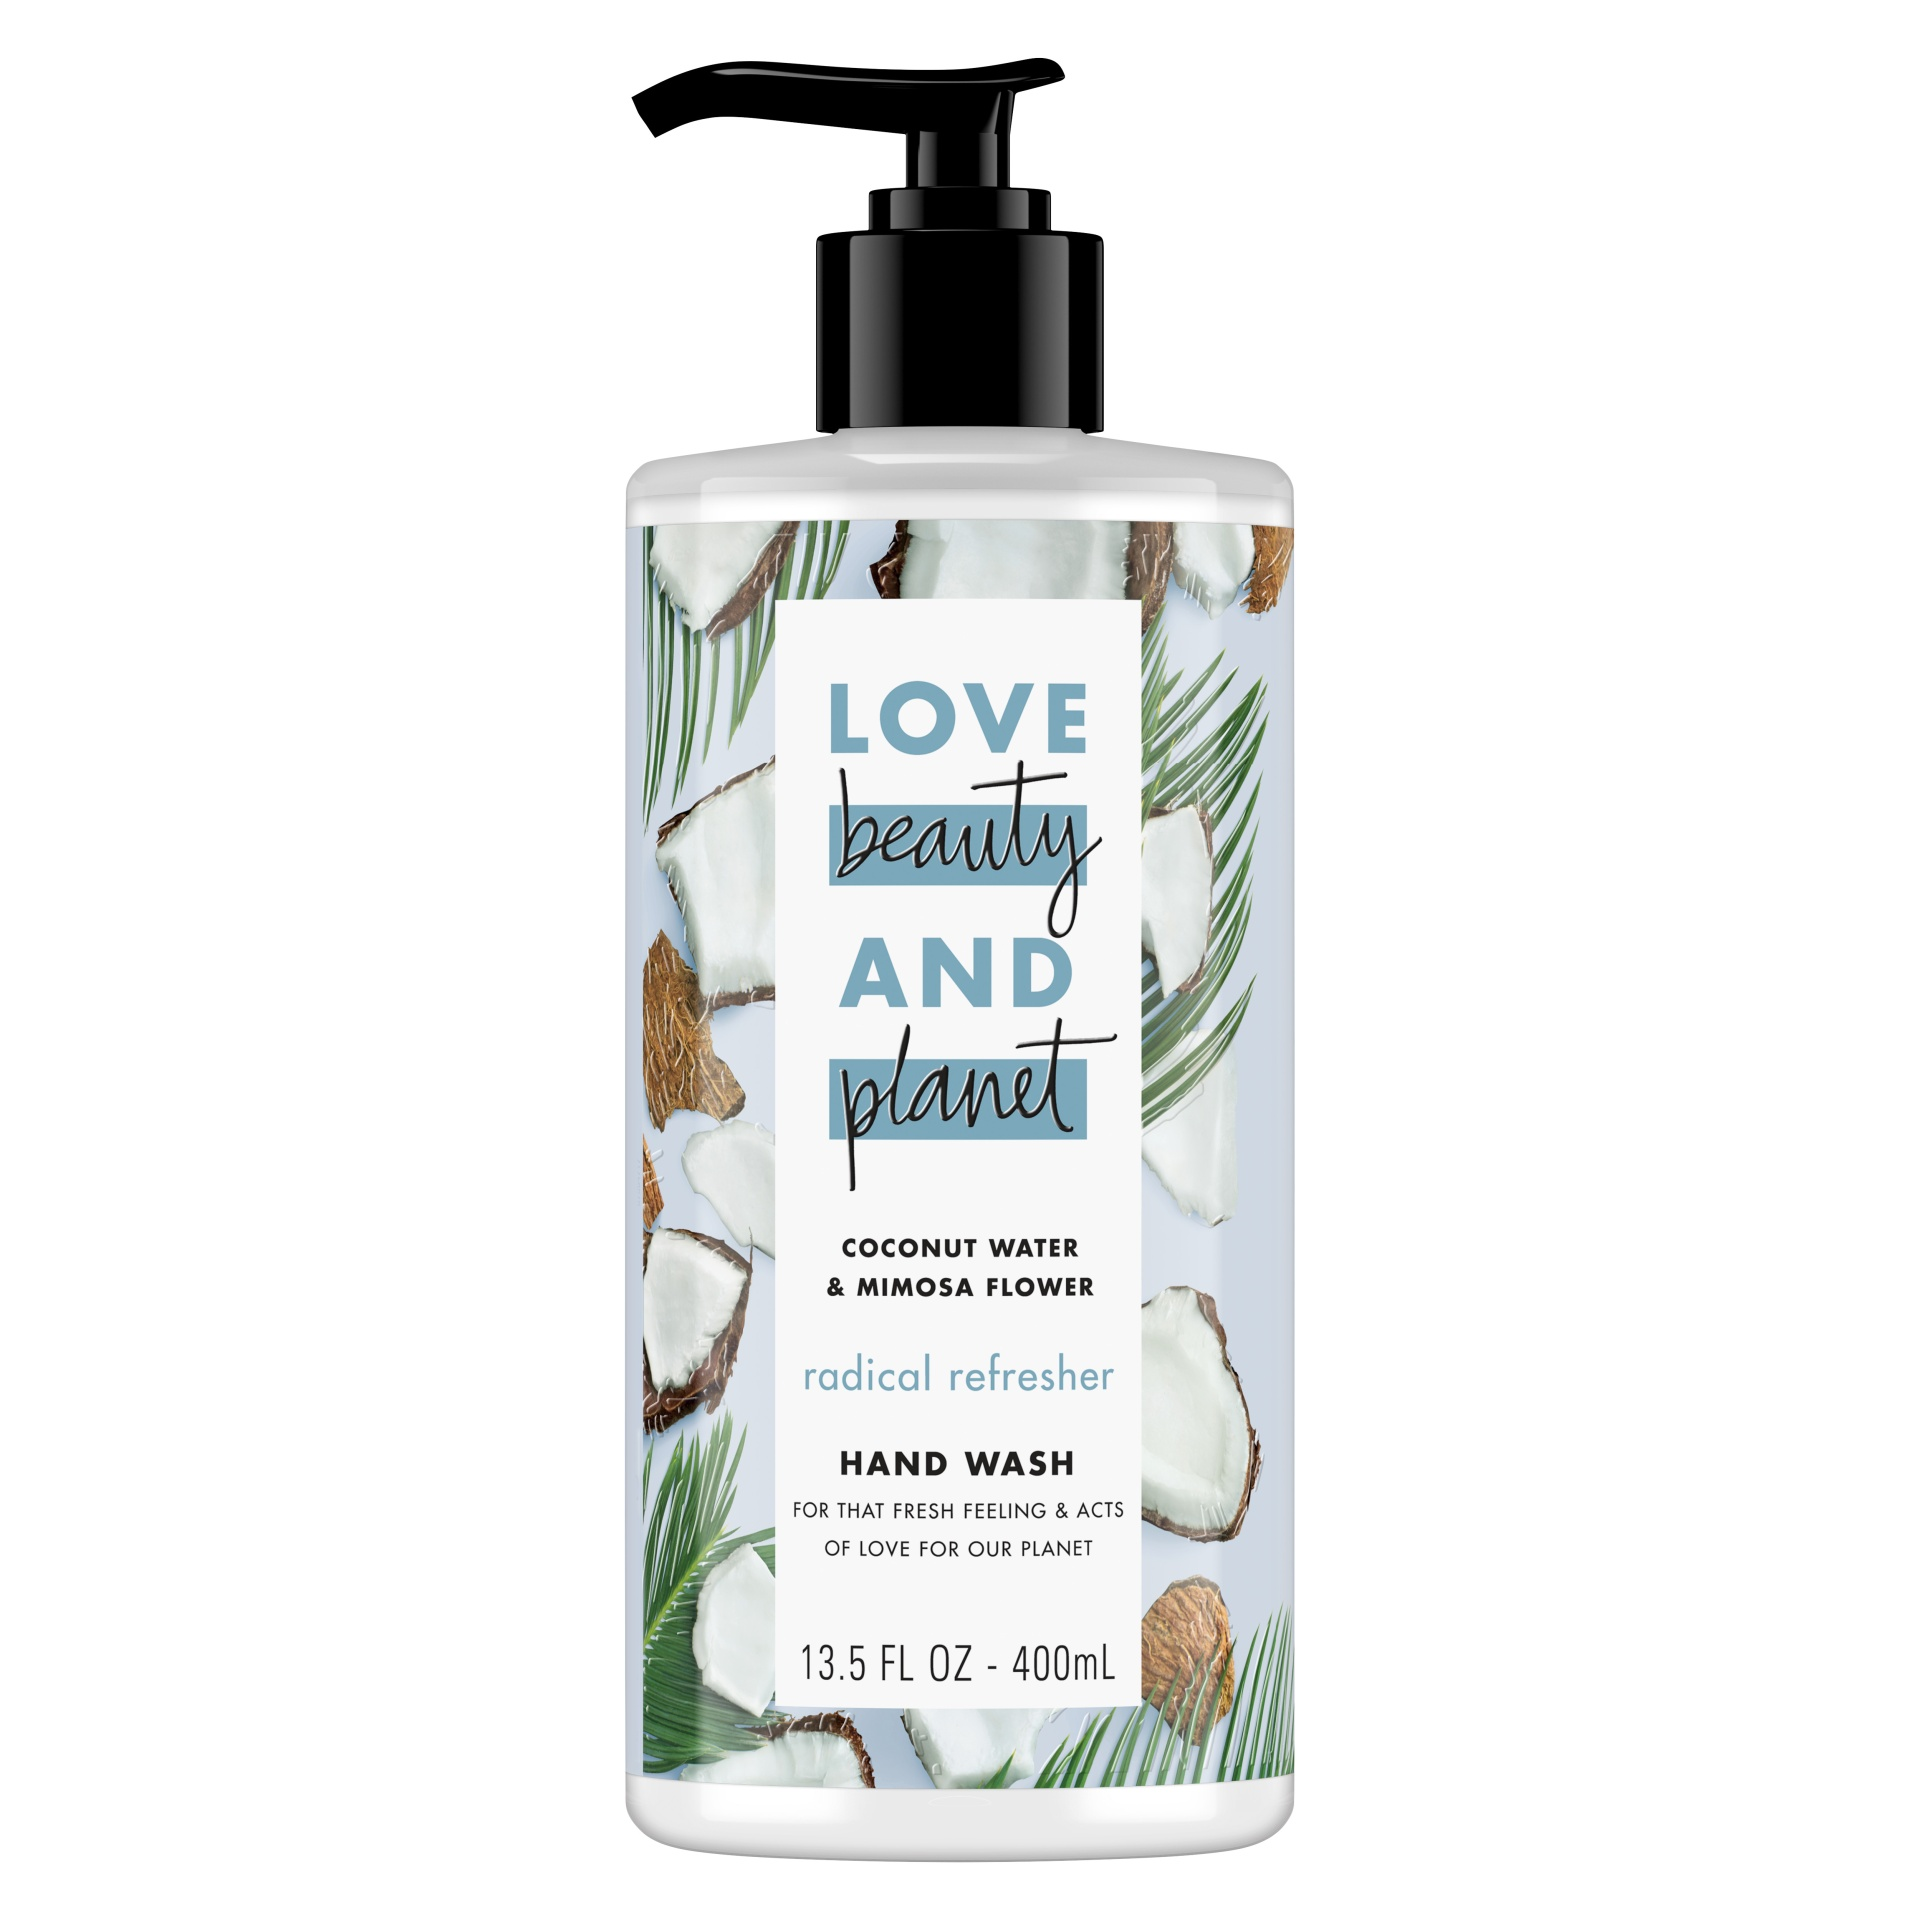 slide 1 of 1, Love Beauty and Planet Coconut Water & Mimosa Flower, for refreshed hands Hand Wash,